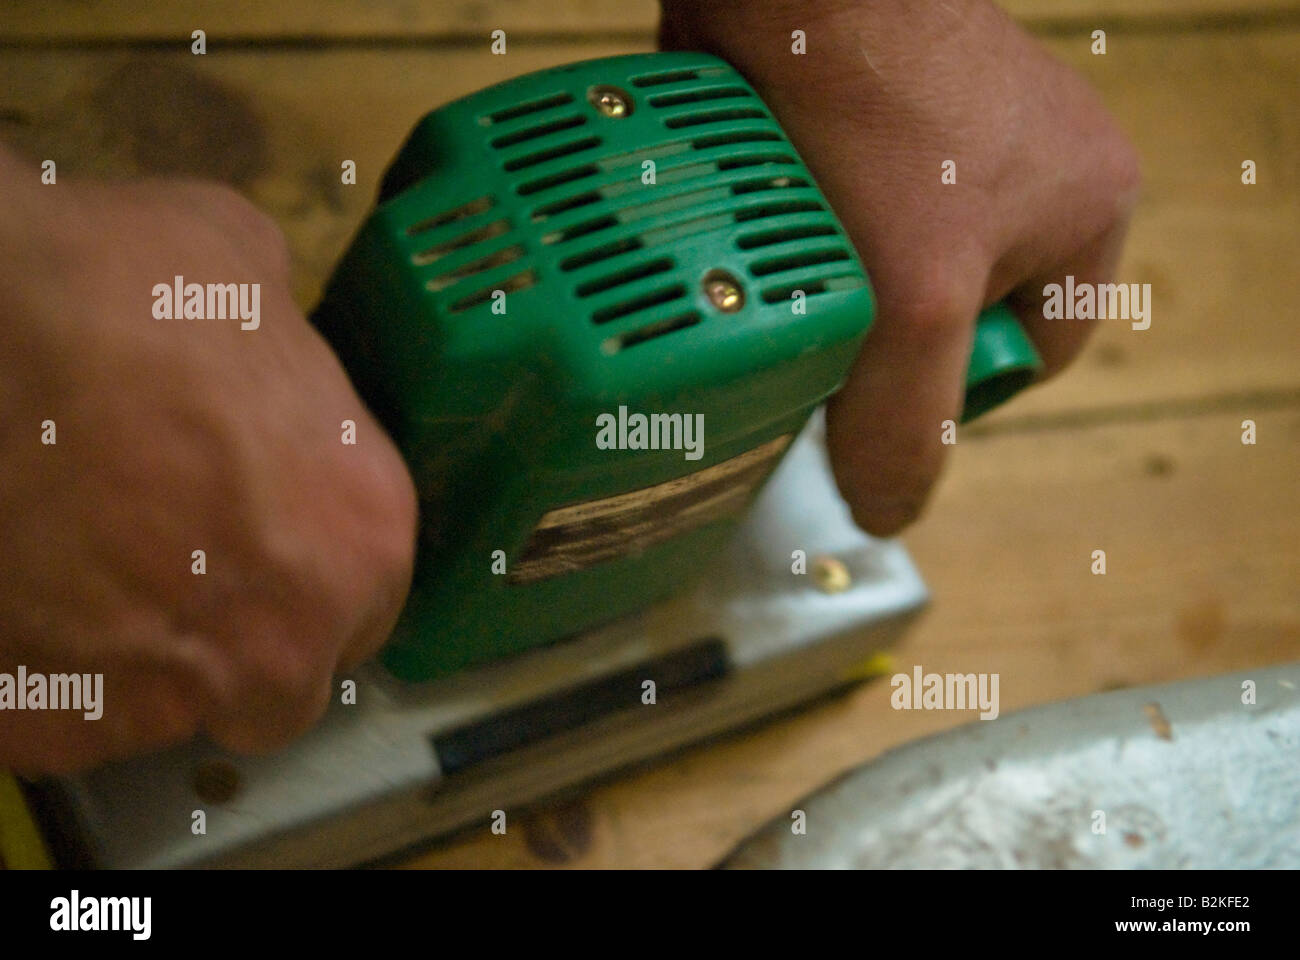 Sanding wooden boards with an orbital sander - Stock Image